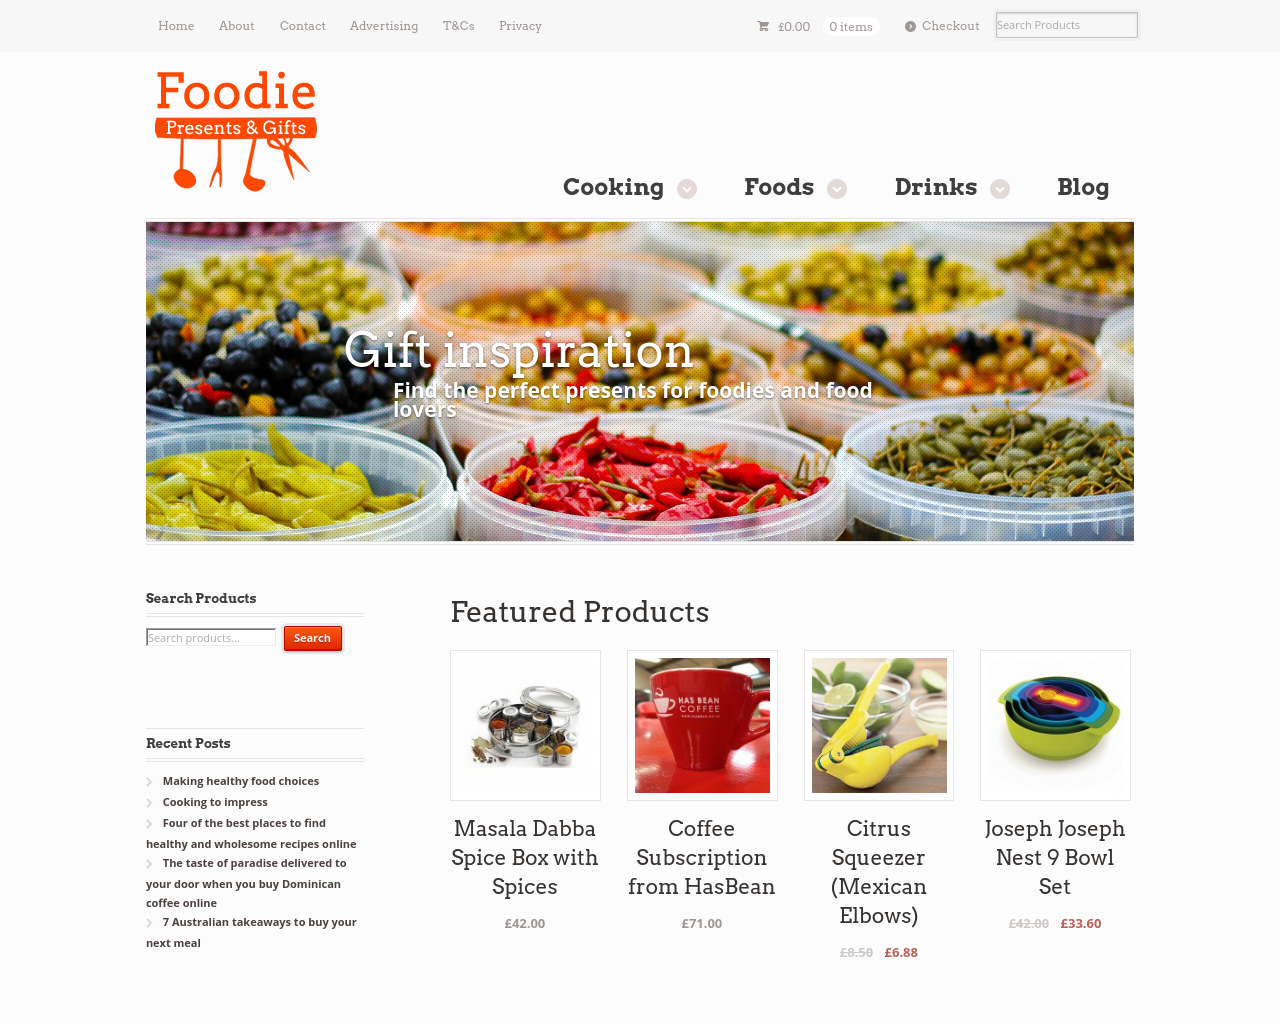 Foodie-Presents-&-Gifts-Advertising-Reviews-Pricing